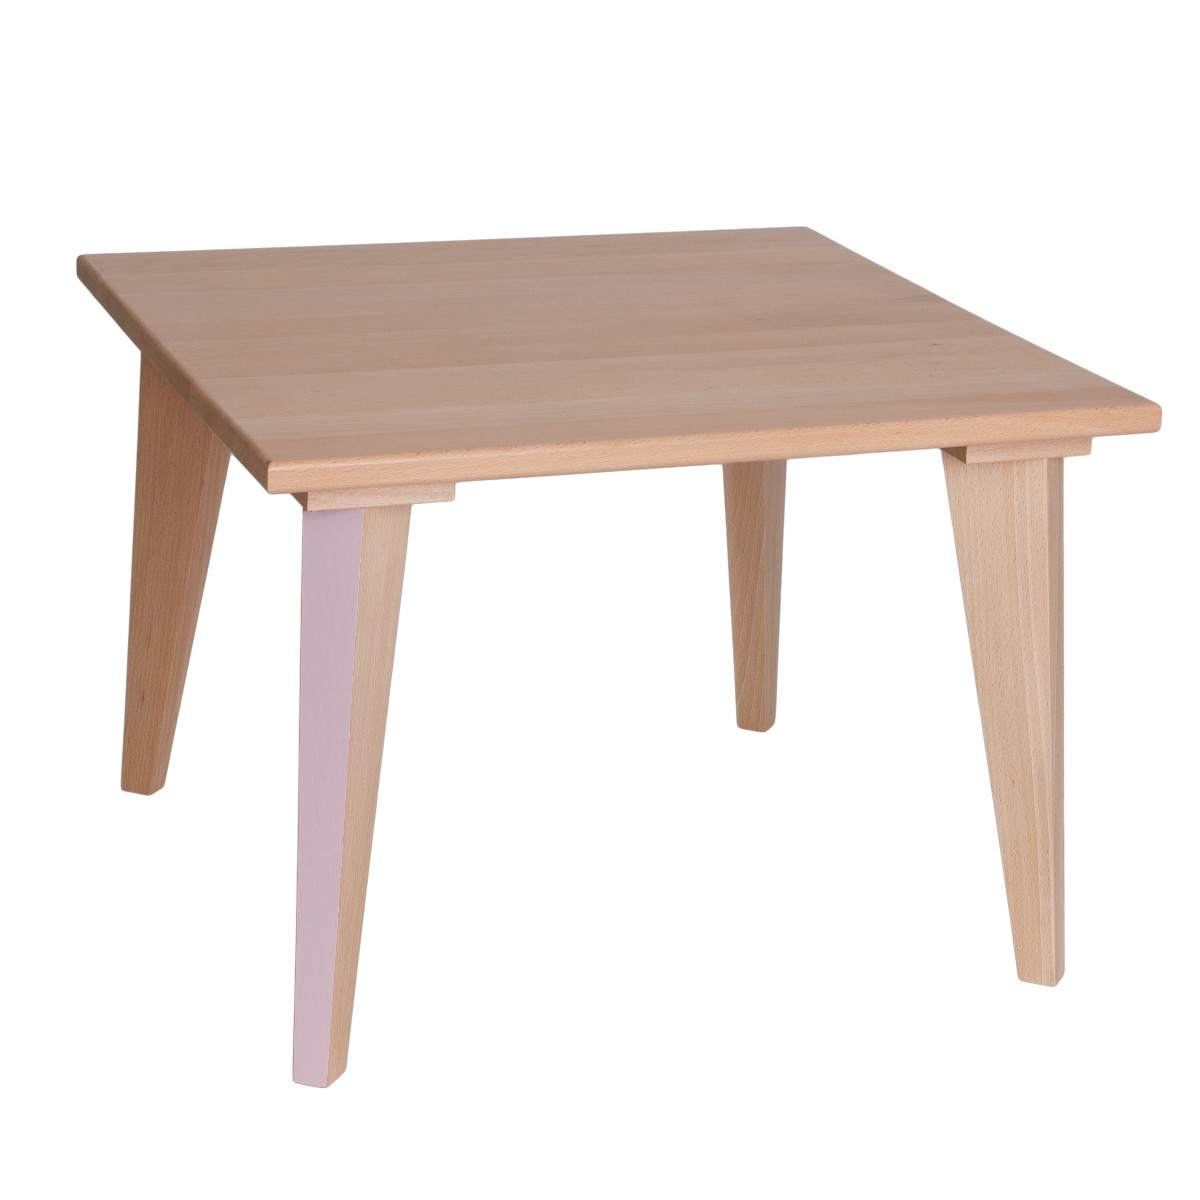 Table design en bois massif